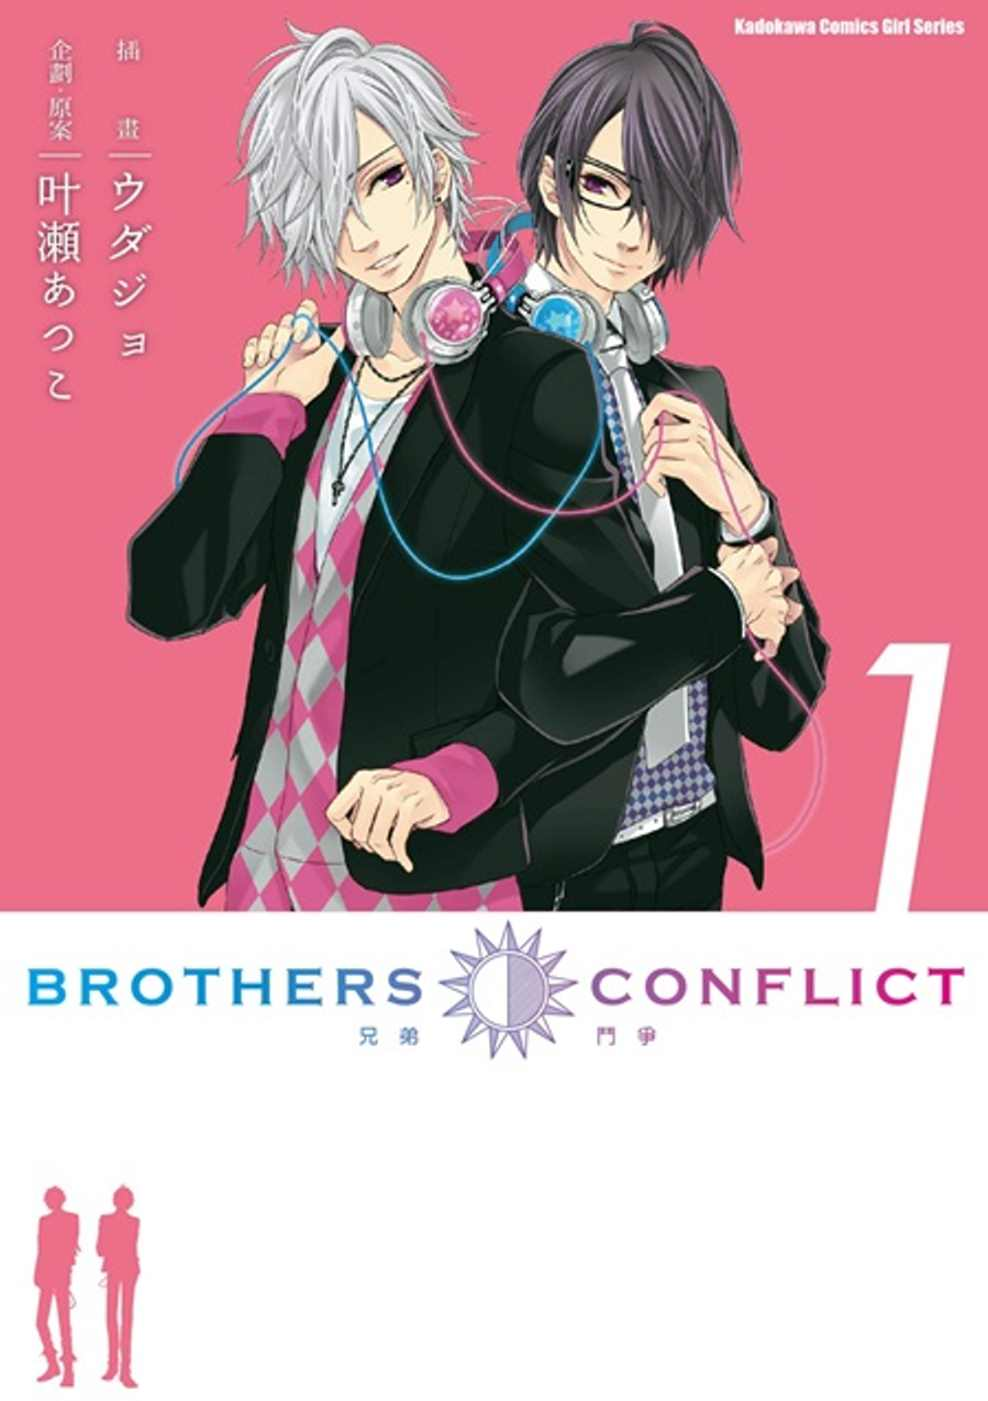 BROTHERS CONFLICT (1)